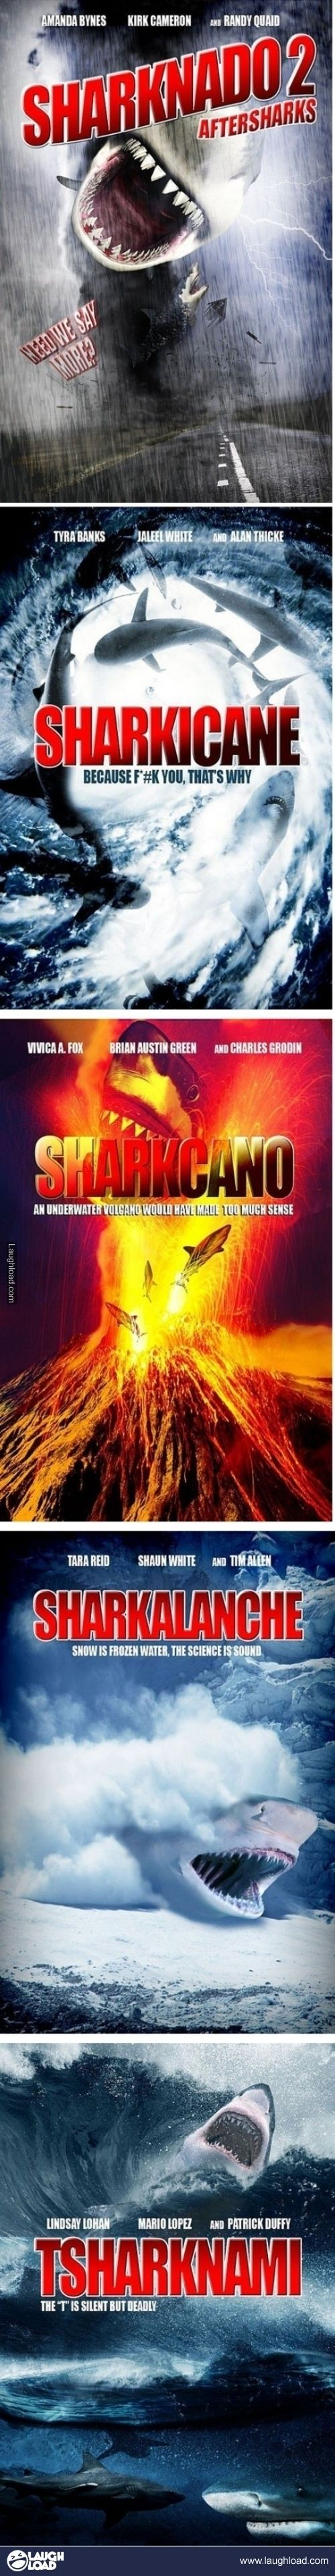 If every one of these was made as part of a Sharknado series, I would watch all of them.